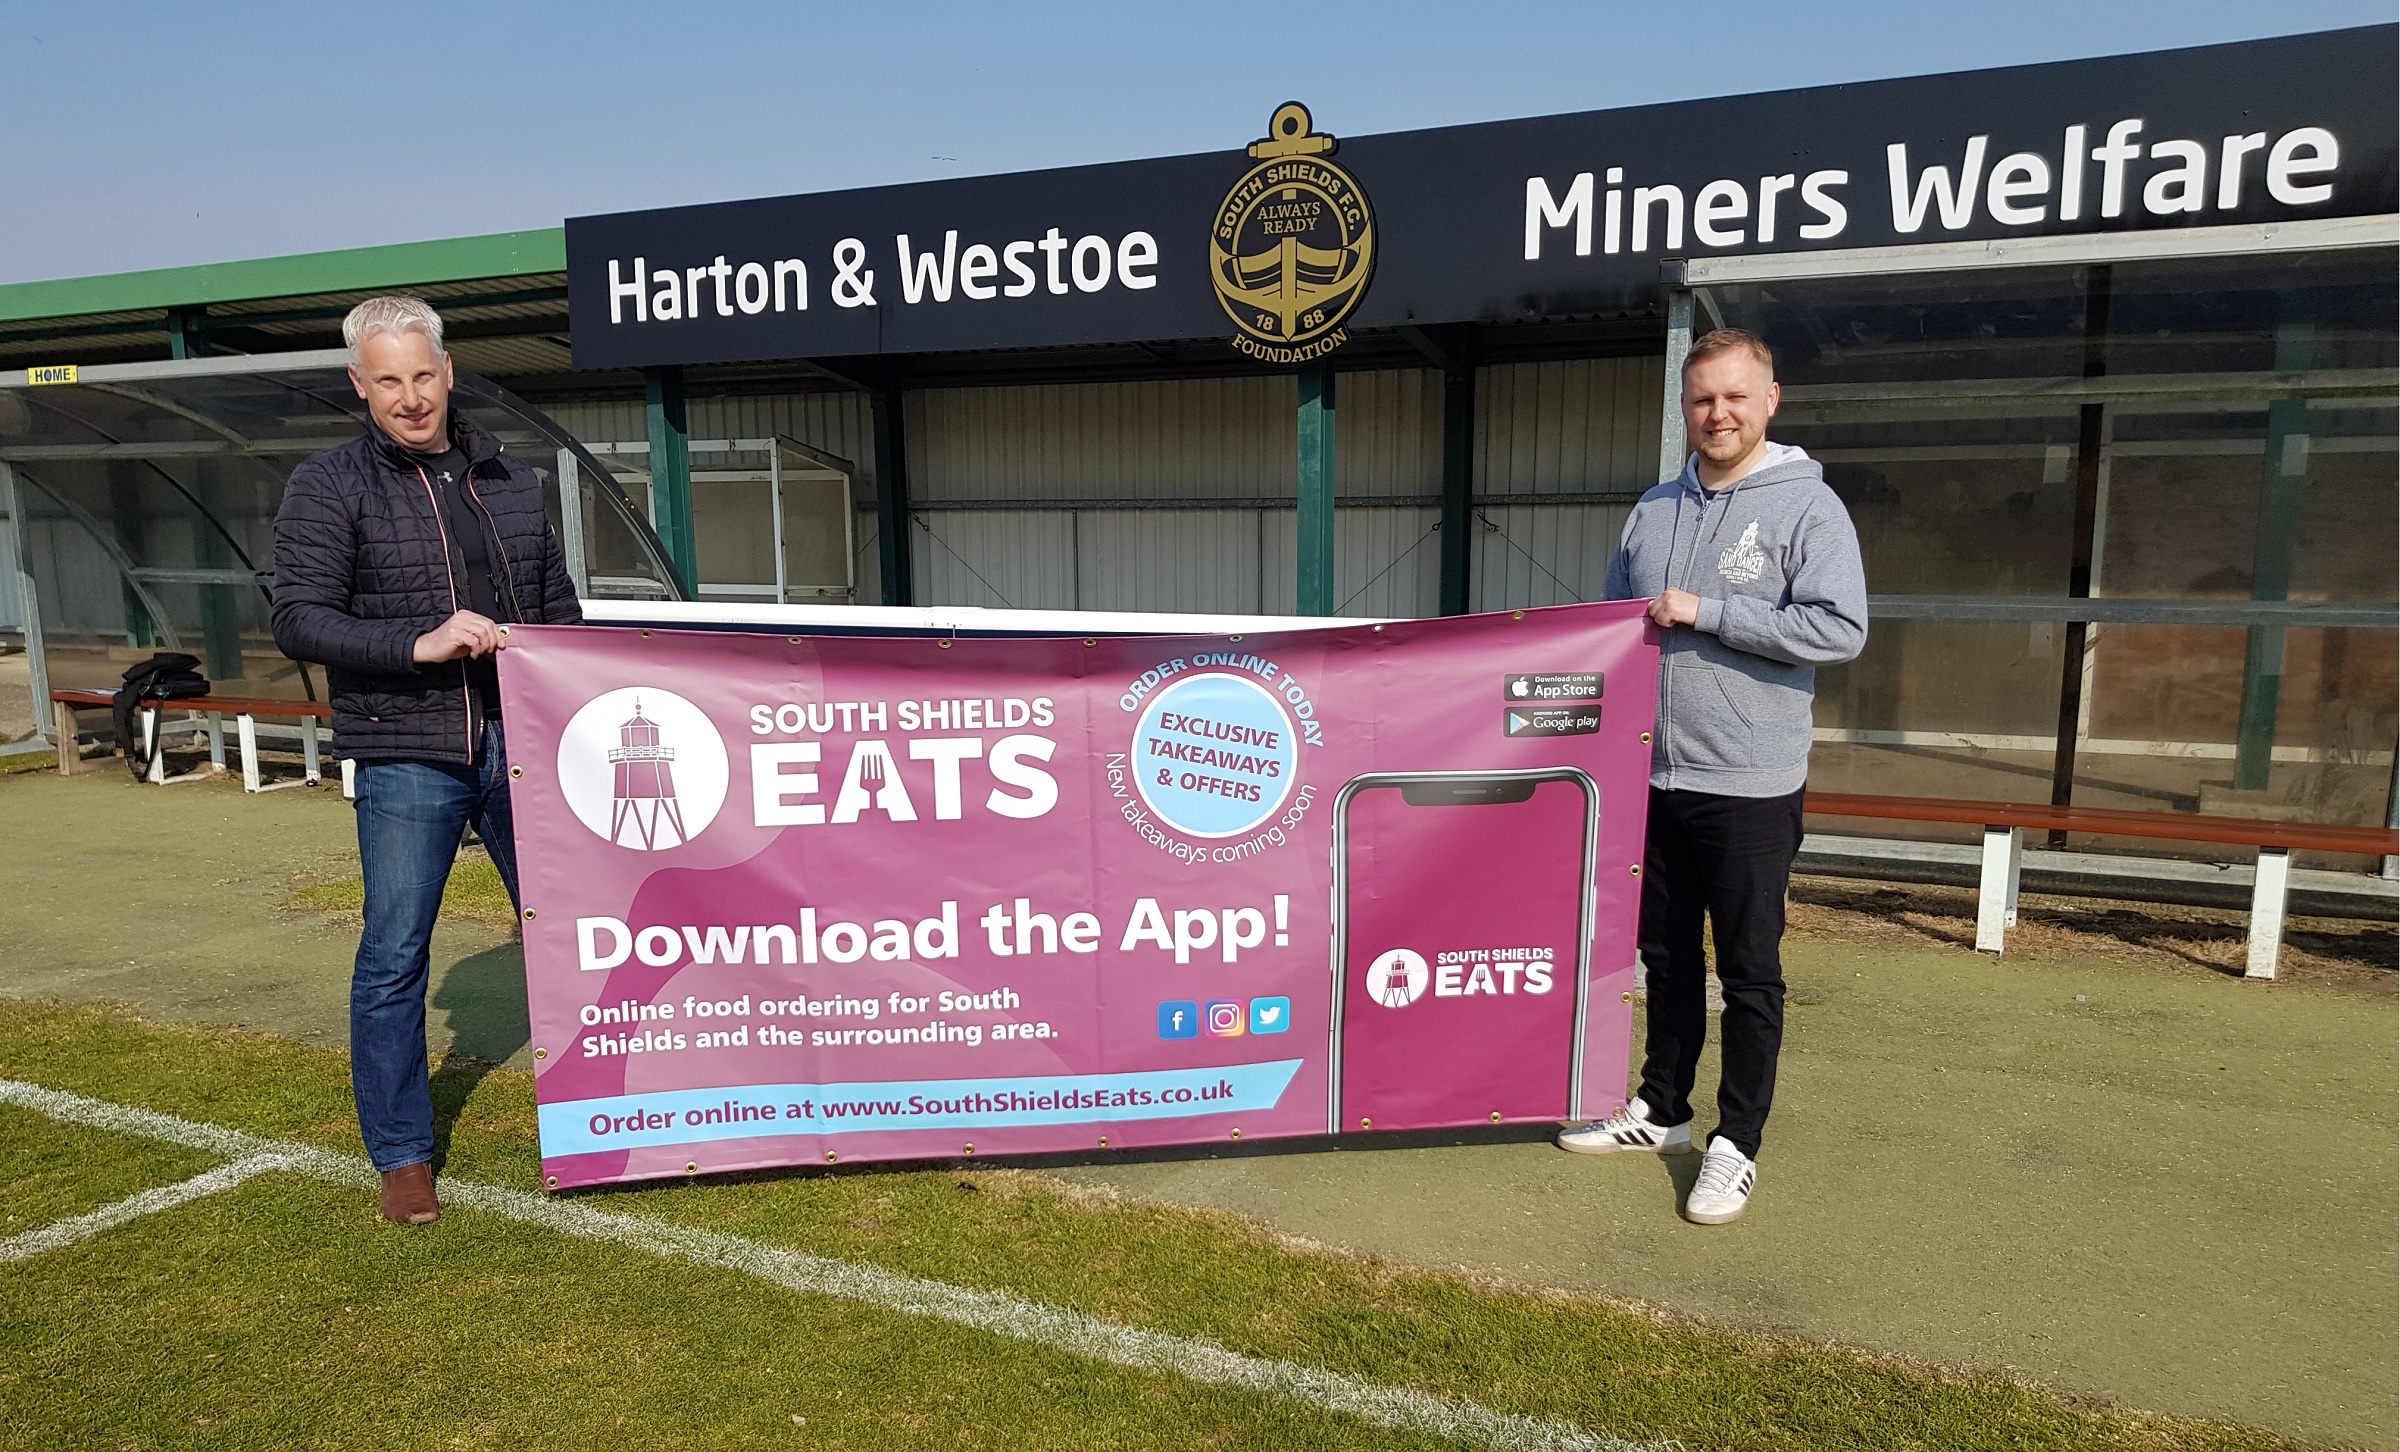 Exciting partnership announced between SSFC Foundation and South Shields Eats